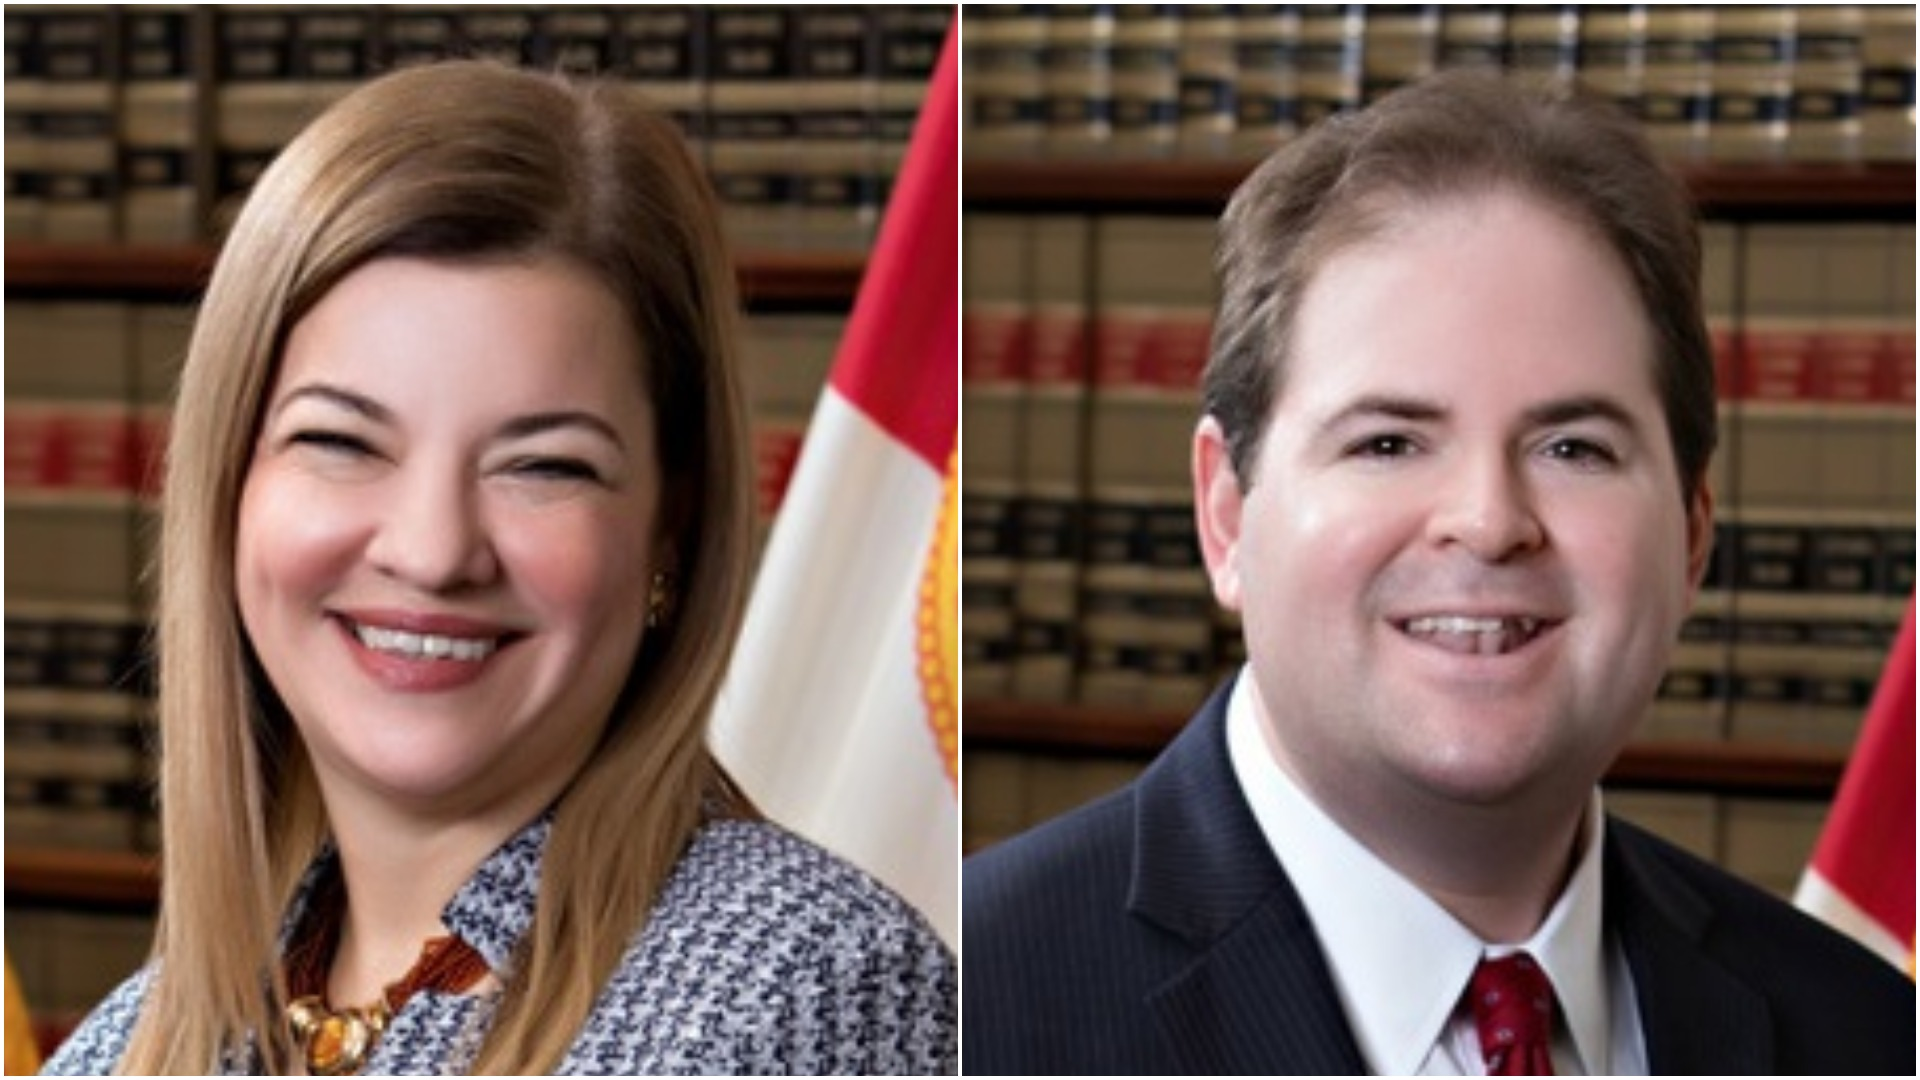 Two Florida Supreme Court justices appointed to federal